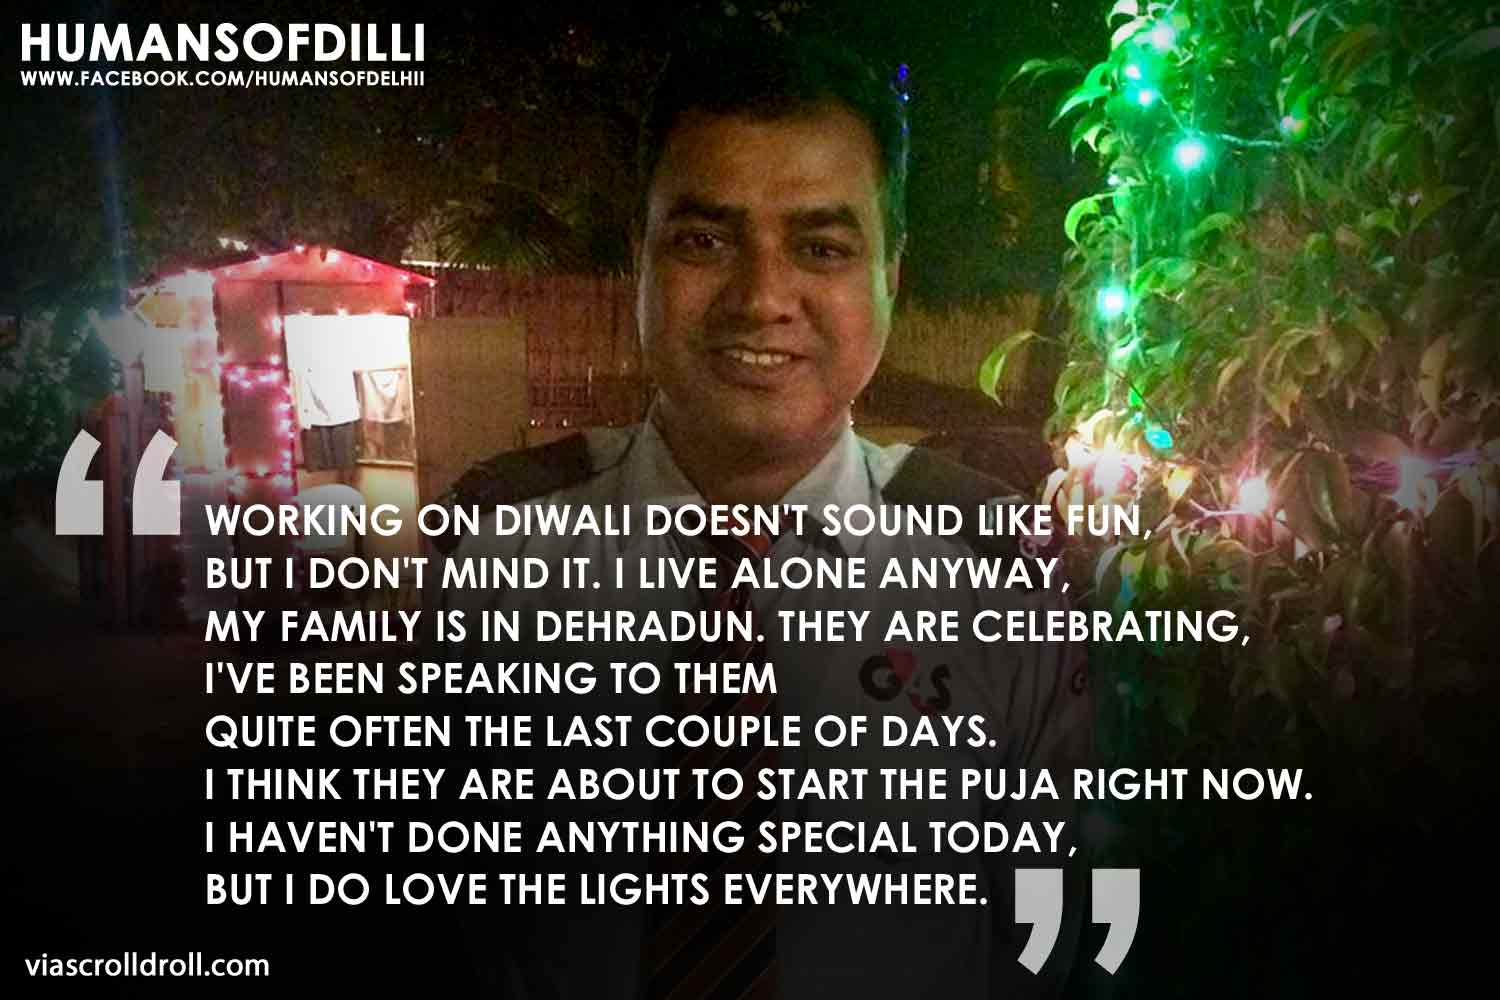 Humans of Dilli (1)